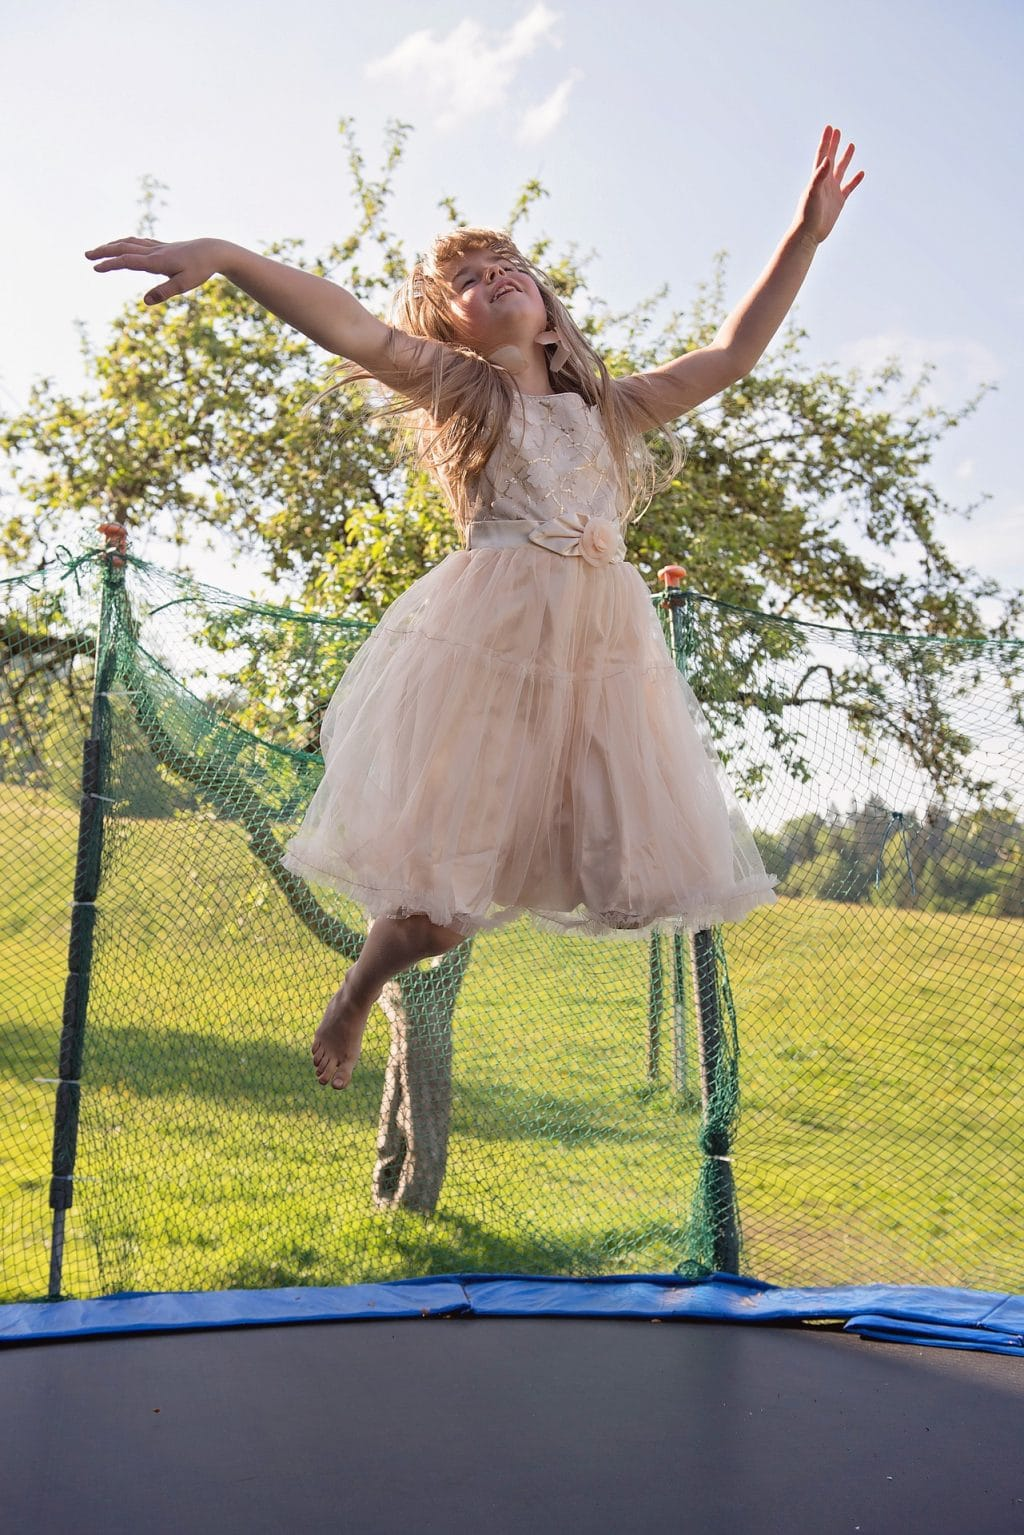 Little girl wearing a fairy costume is jumping at the trampoline and act like a flying fairy